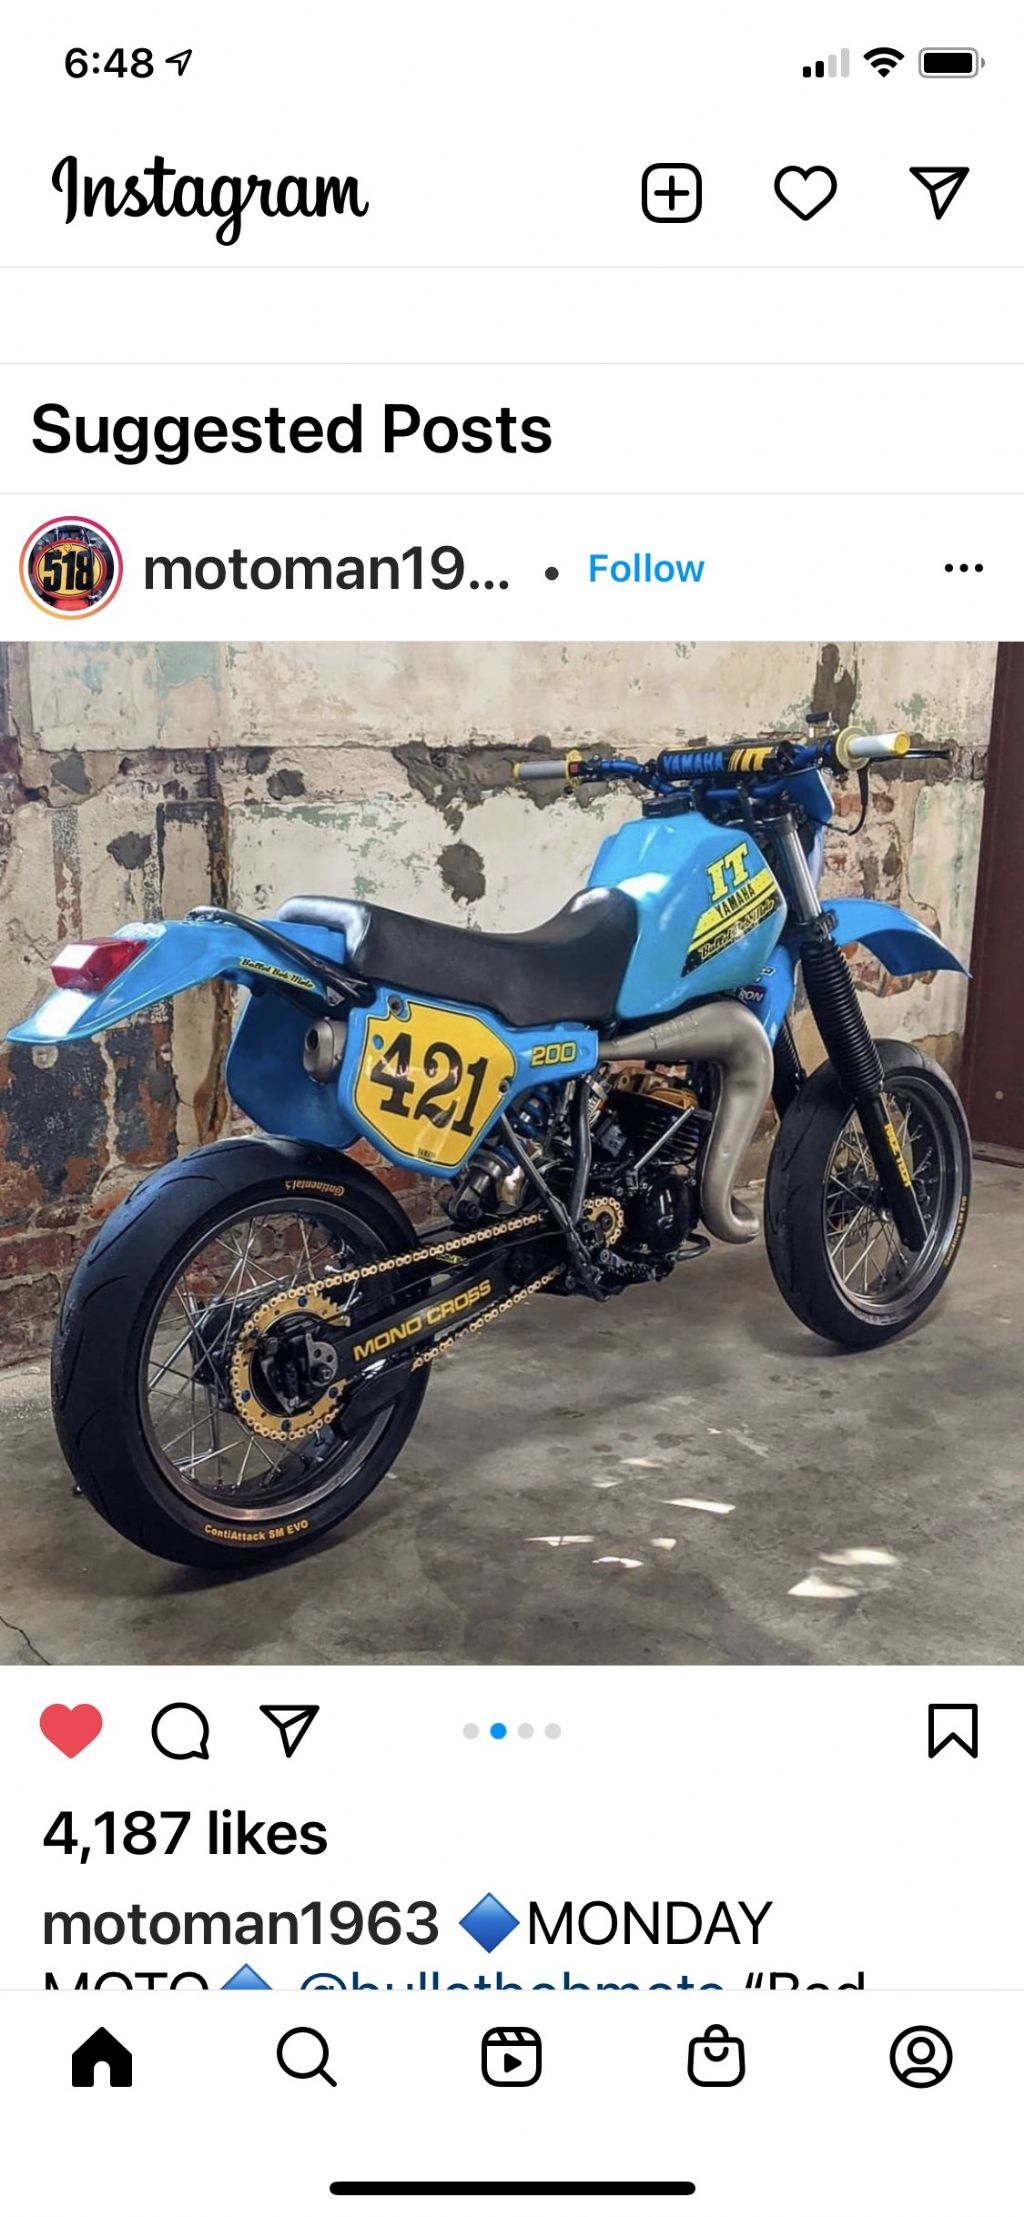 Anyone want to supermoto your IT?